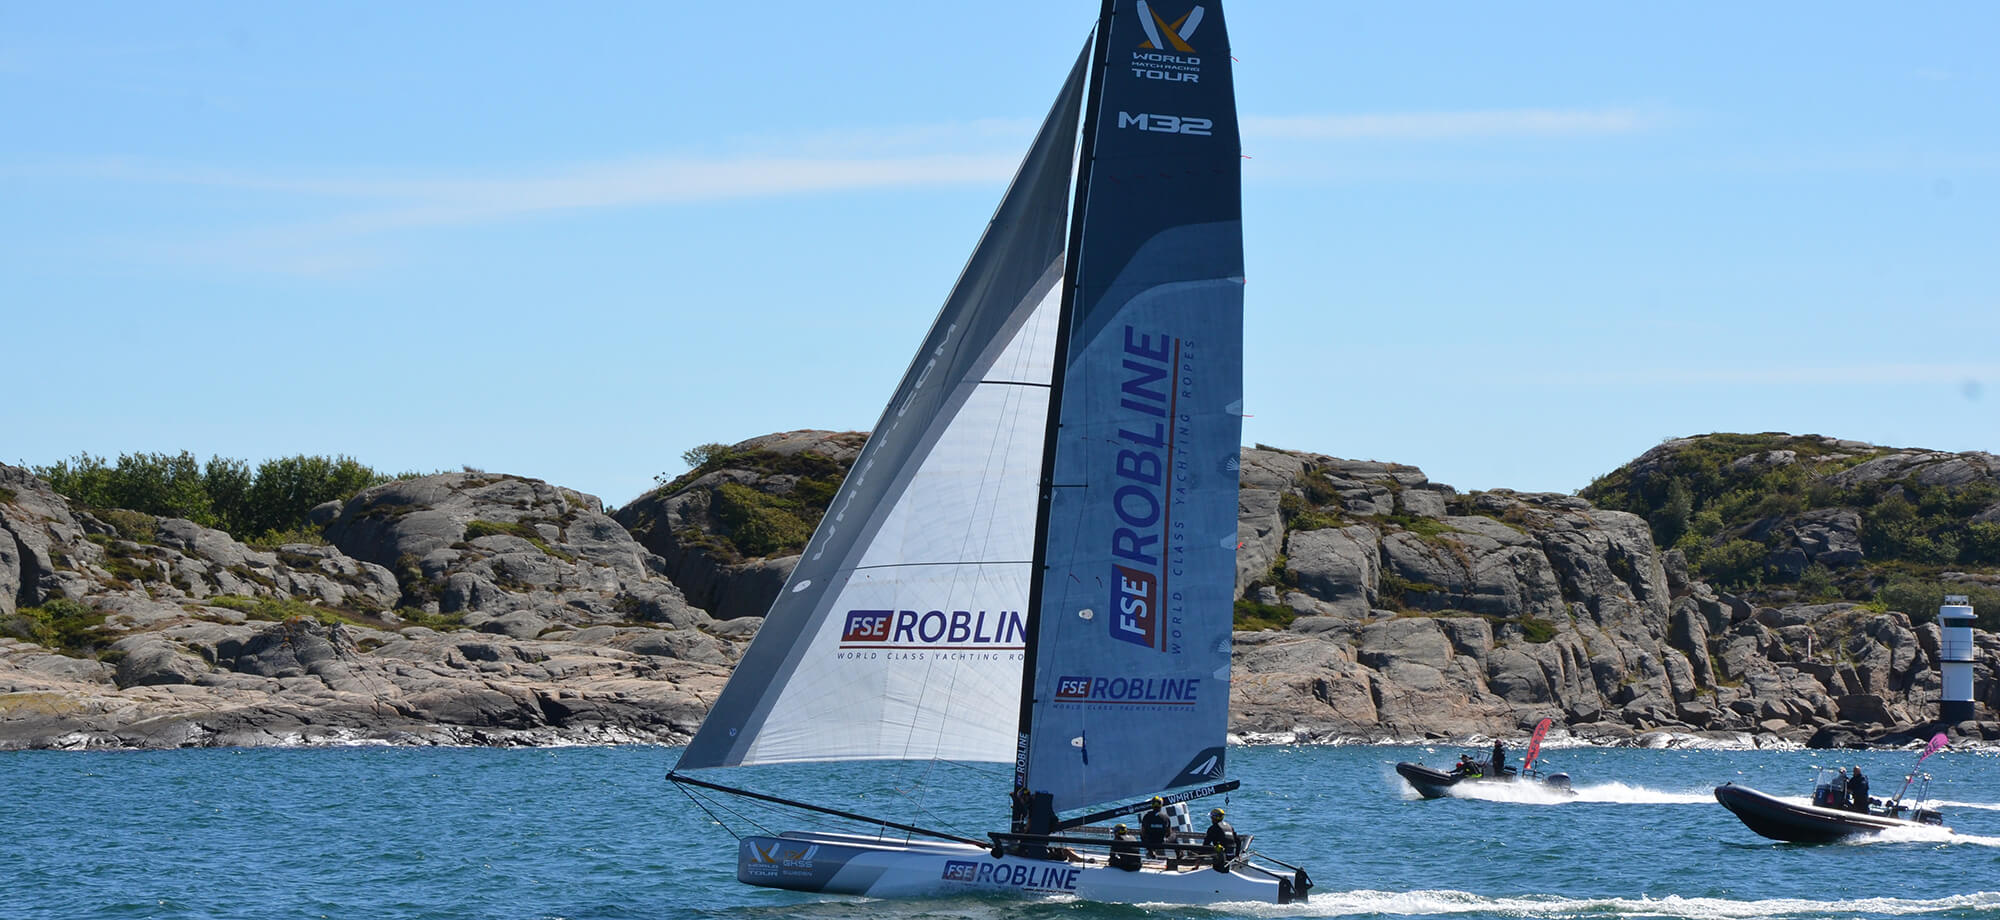 M32 Marstrand event fully supported by FSE Robline